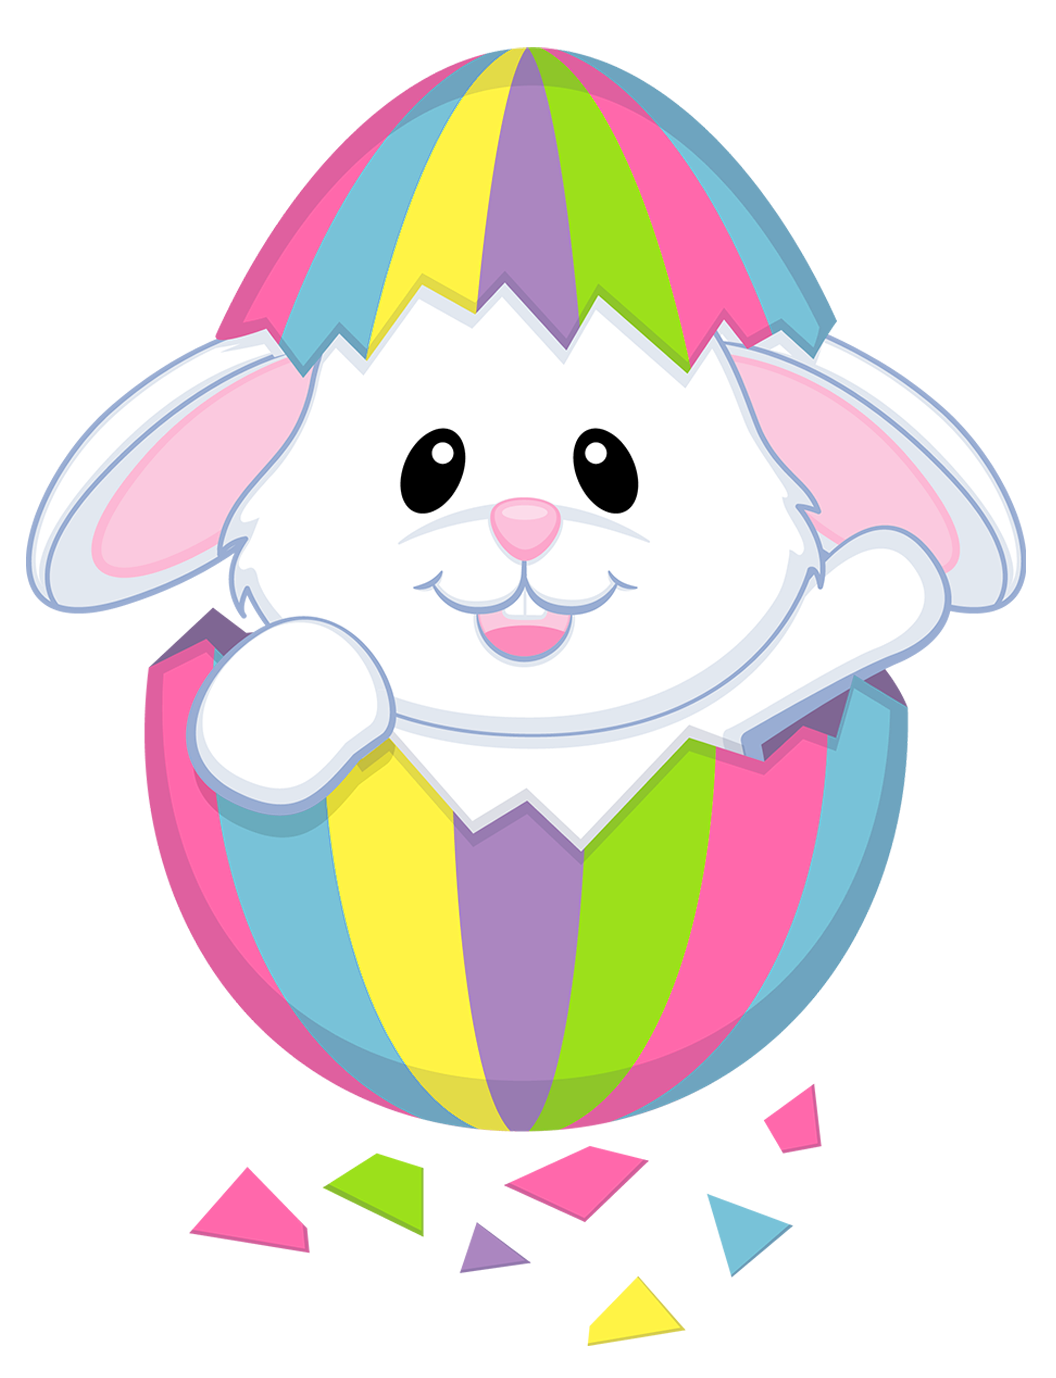 Clipart easter basket bunny picture free Easter Basket And Bunny Clipart - ClipArt Best picture free